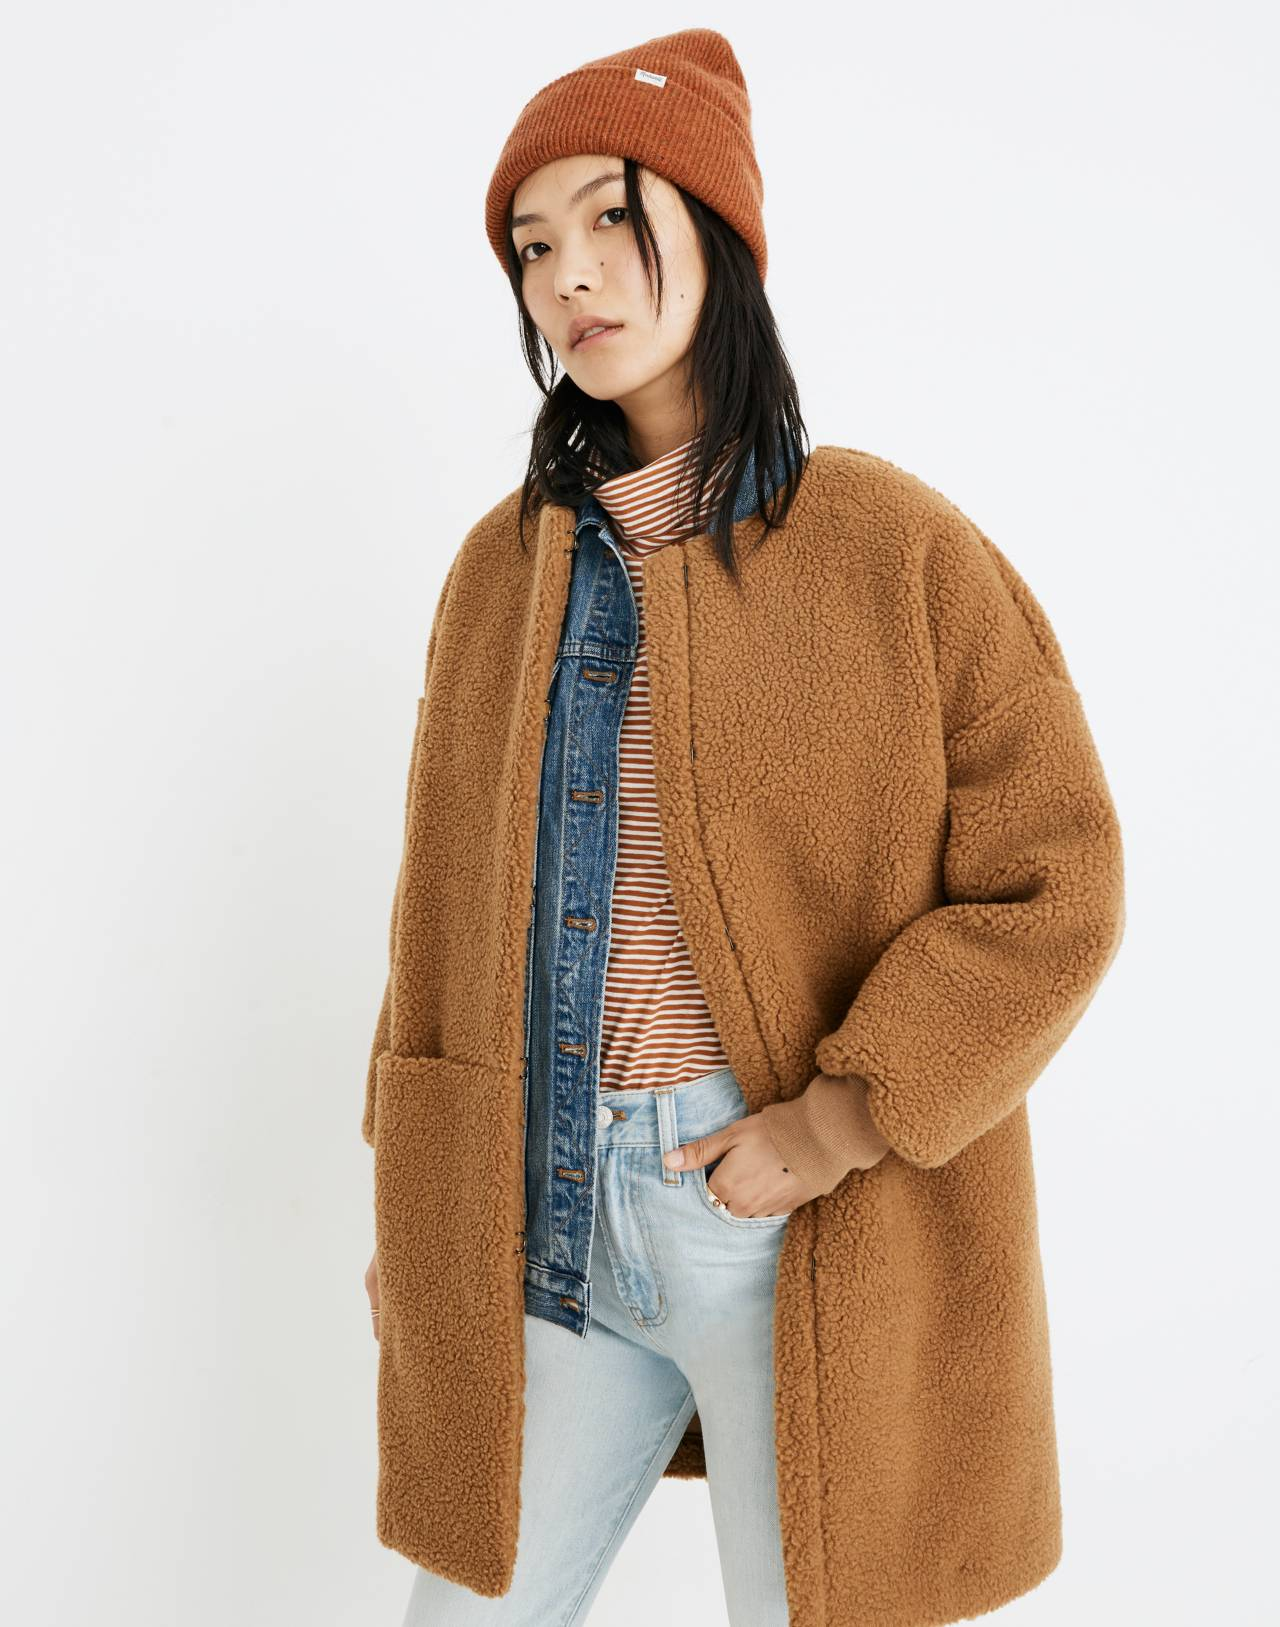 Bonded Sherpa Cocoon Coat in castle brown image 1